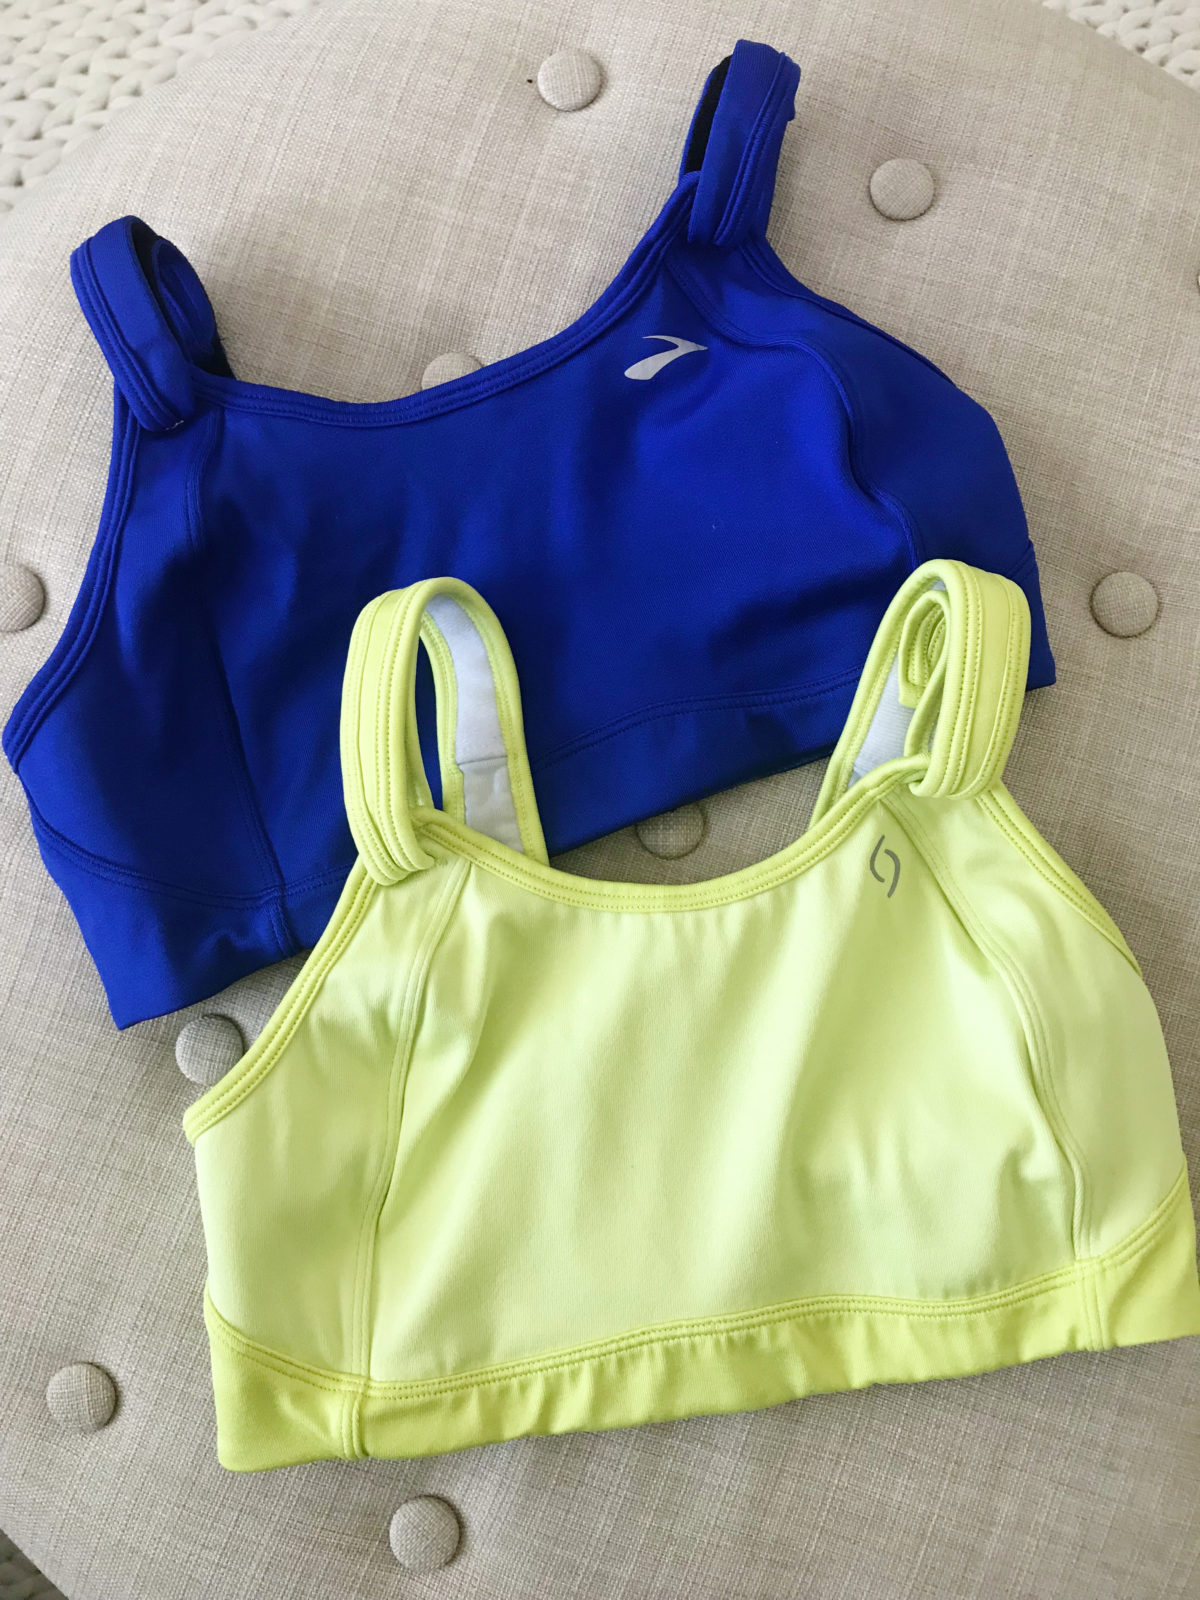 Best sports bras for running